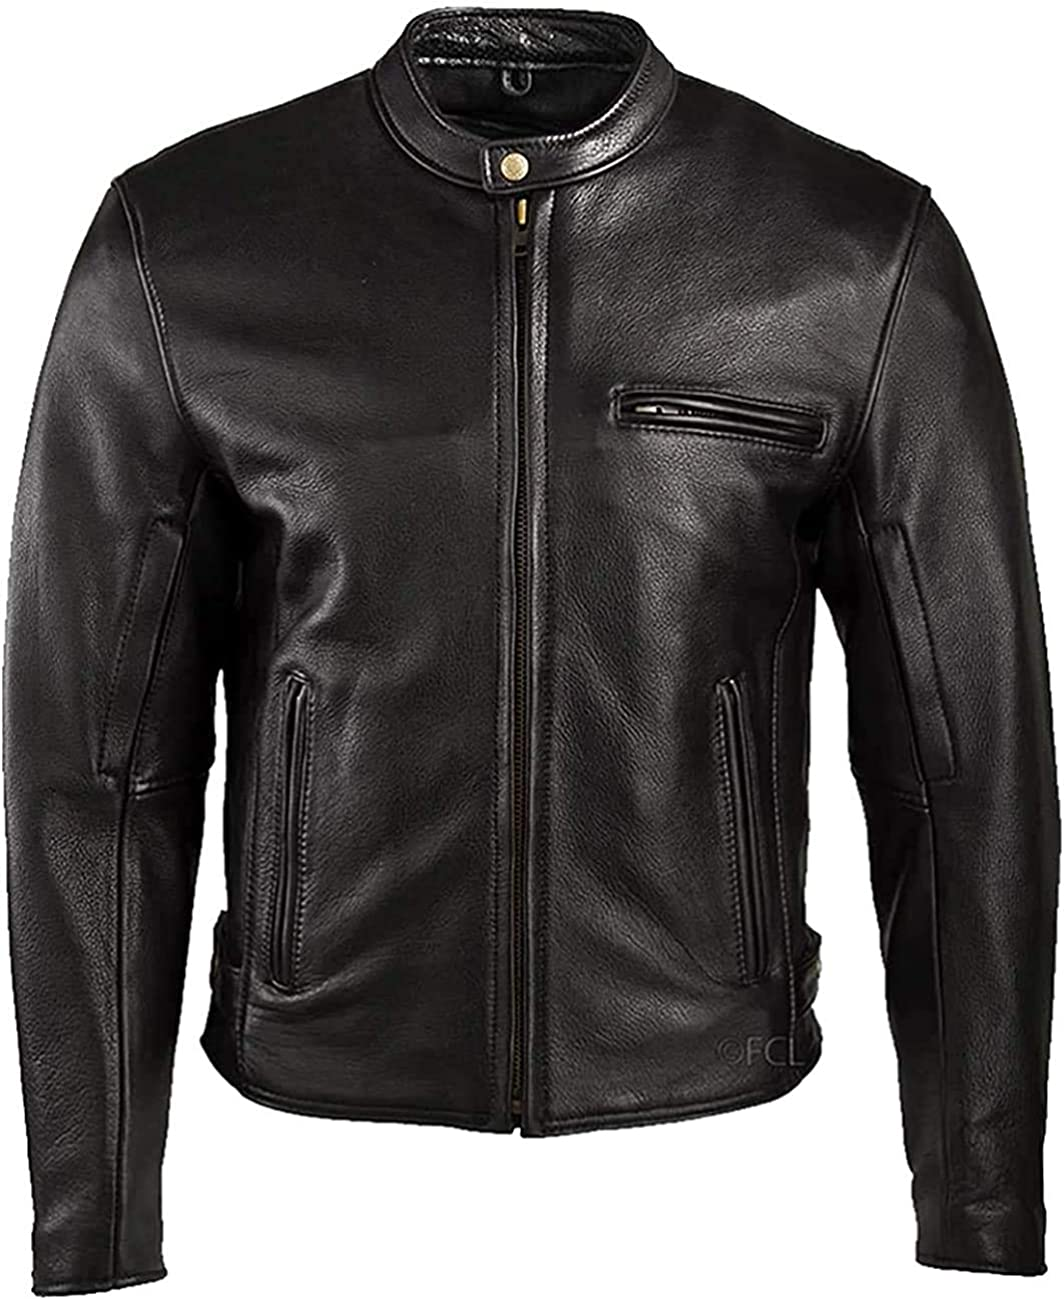 Fashion Men Black Selling and selling genuine leather Branded goods Co Milled Grain jacket-Natural